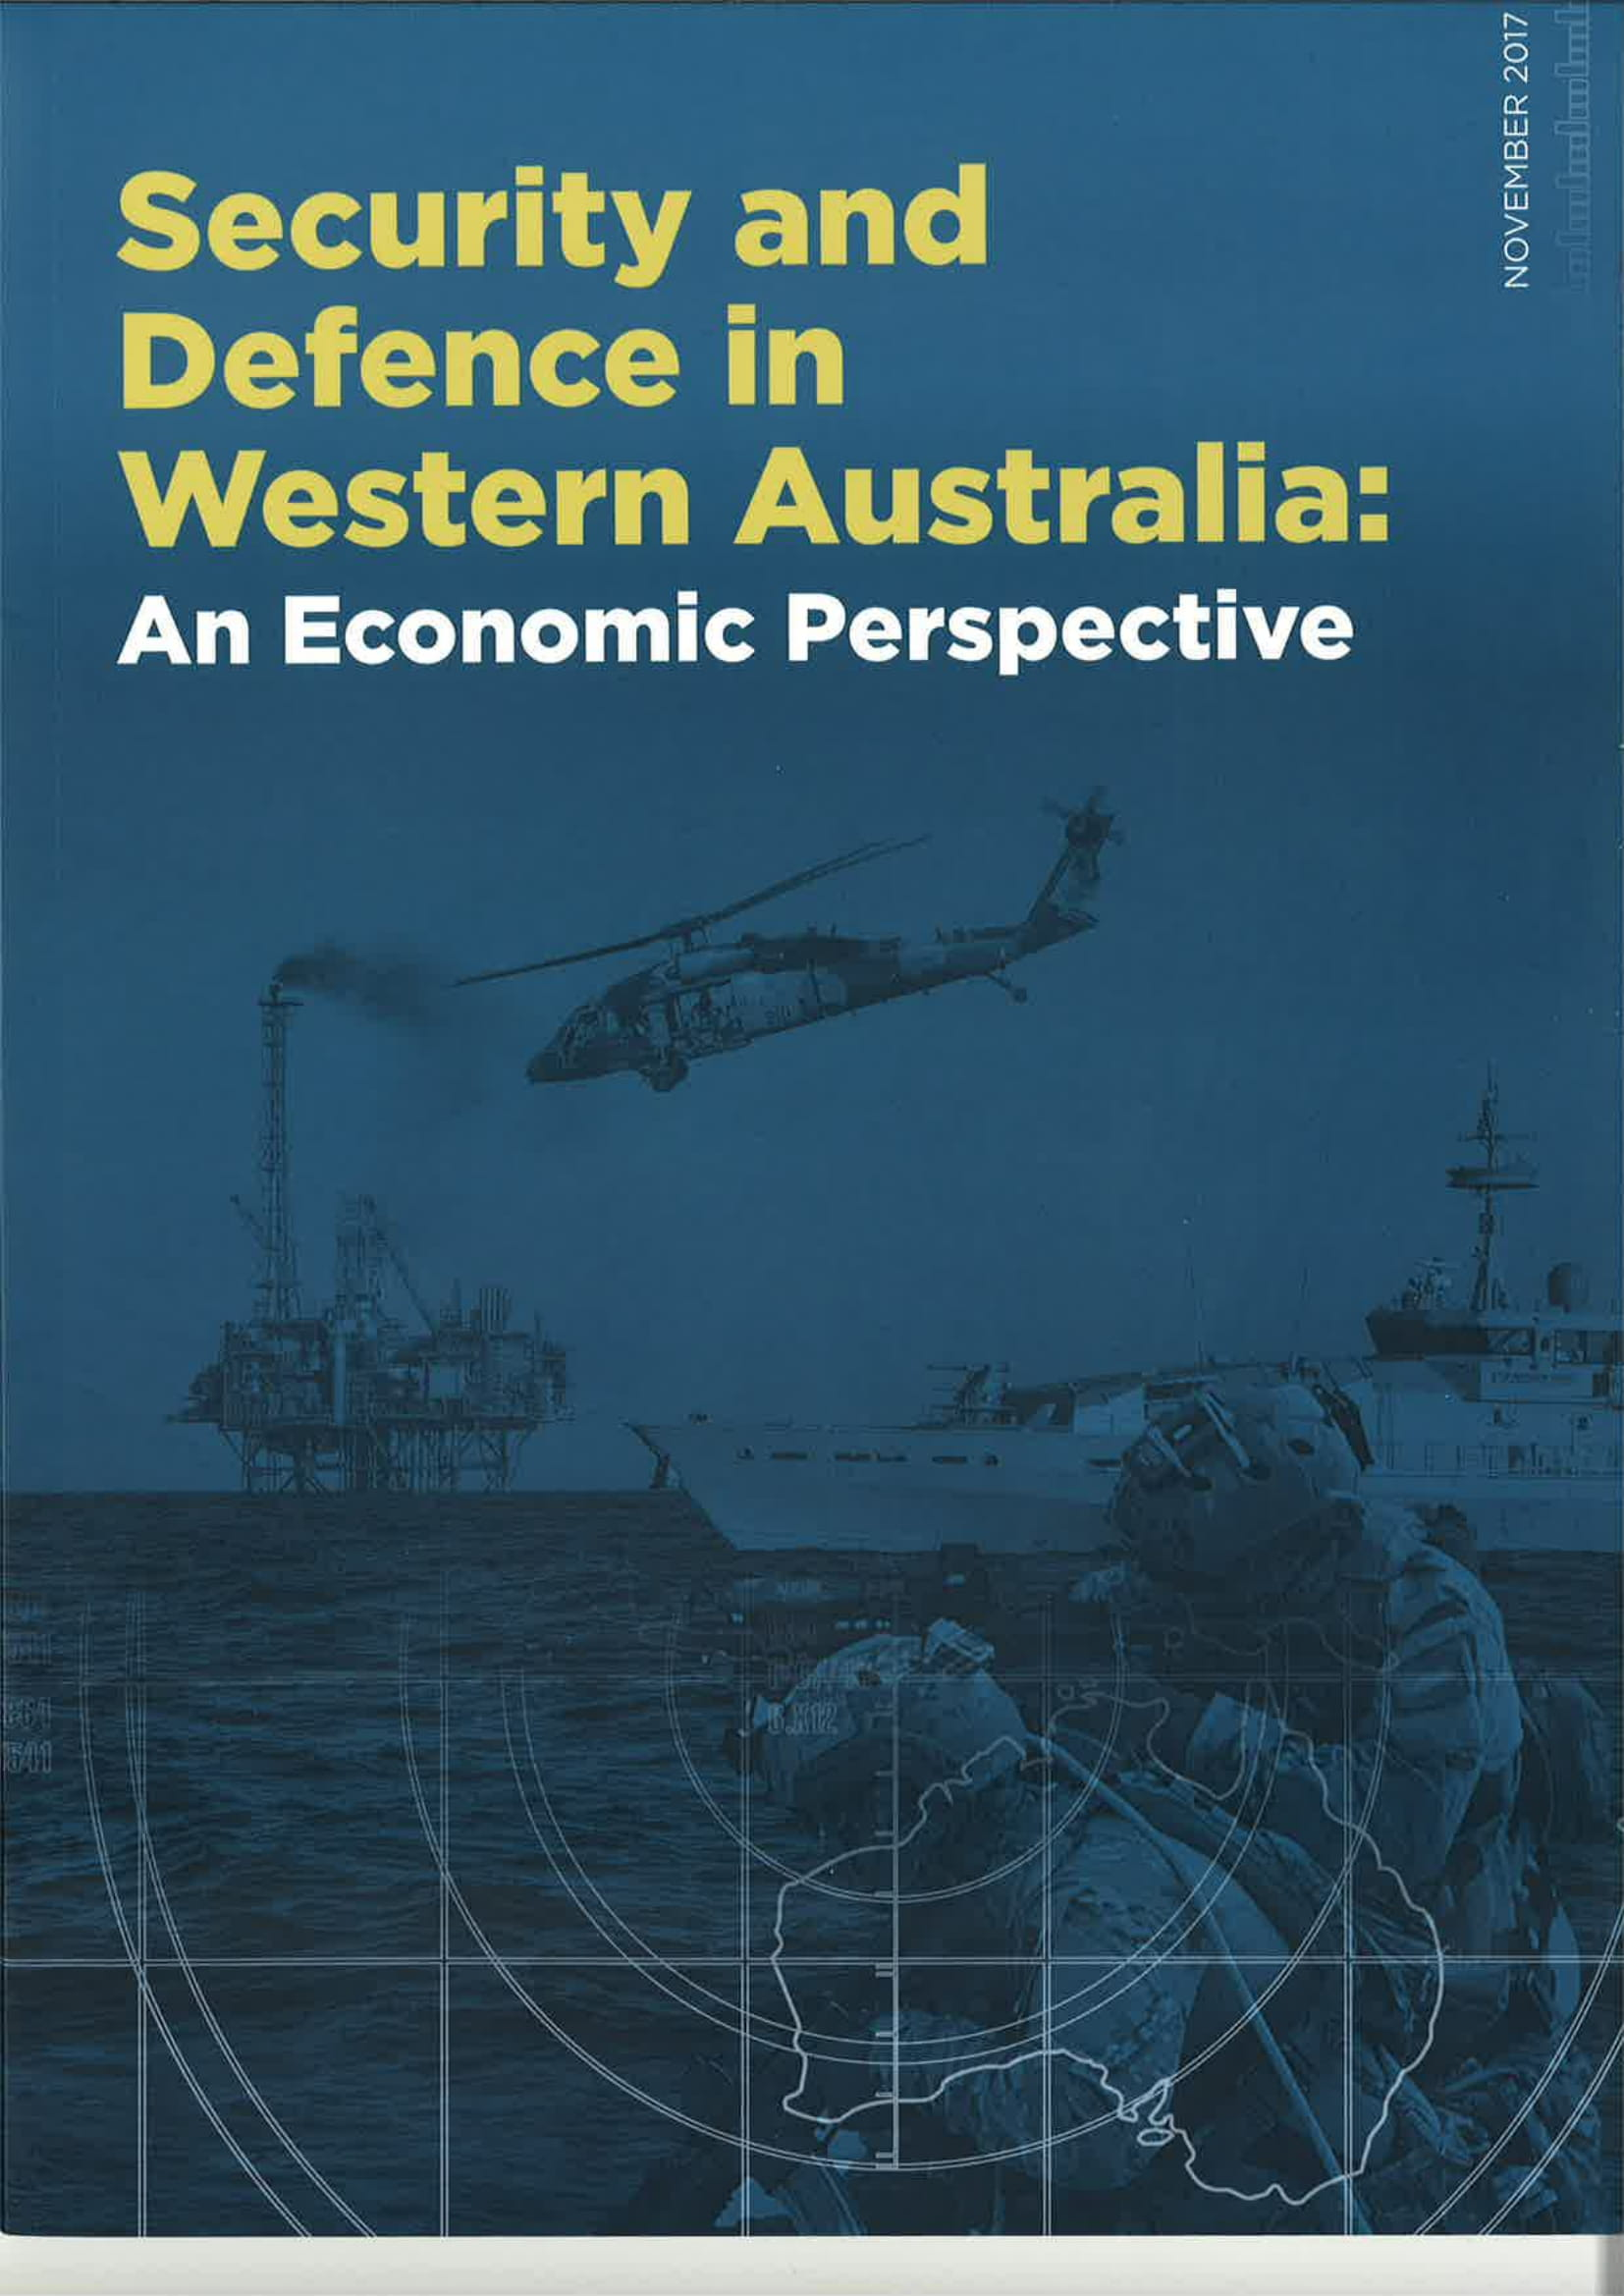 Security and Defence in Western Australia Economic Perspective Cover Image